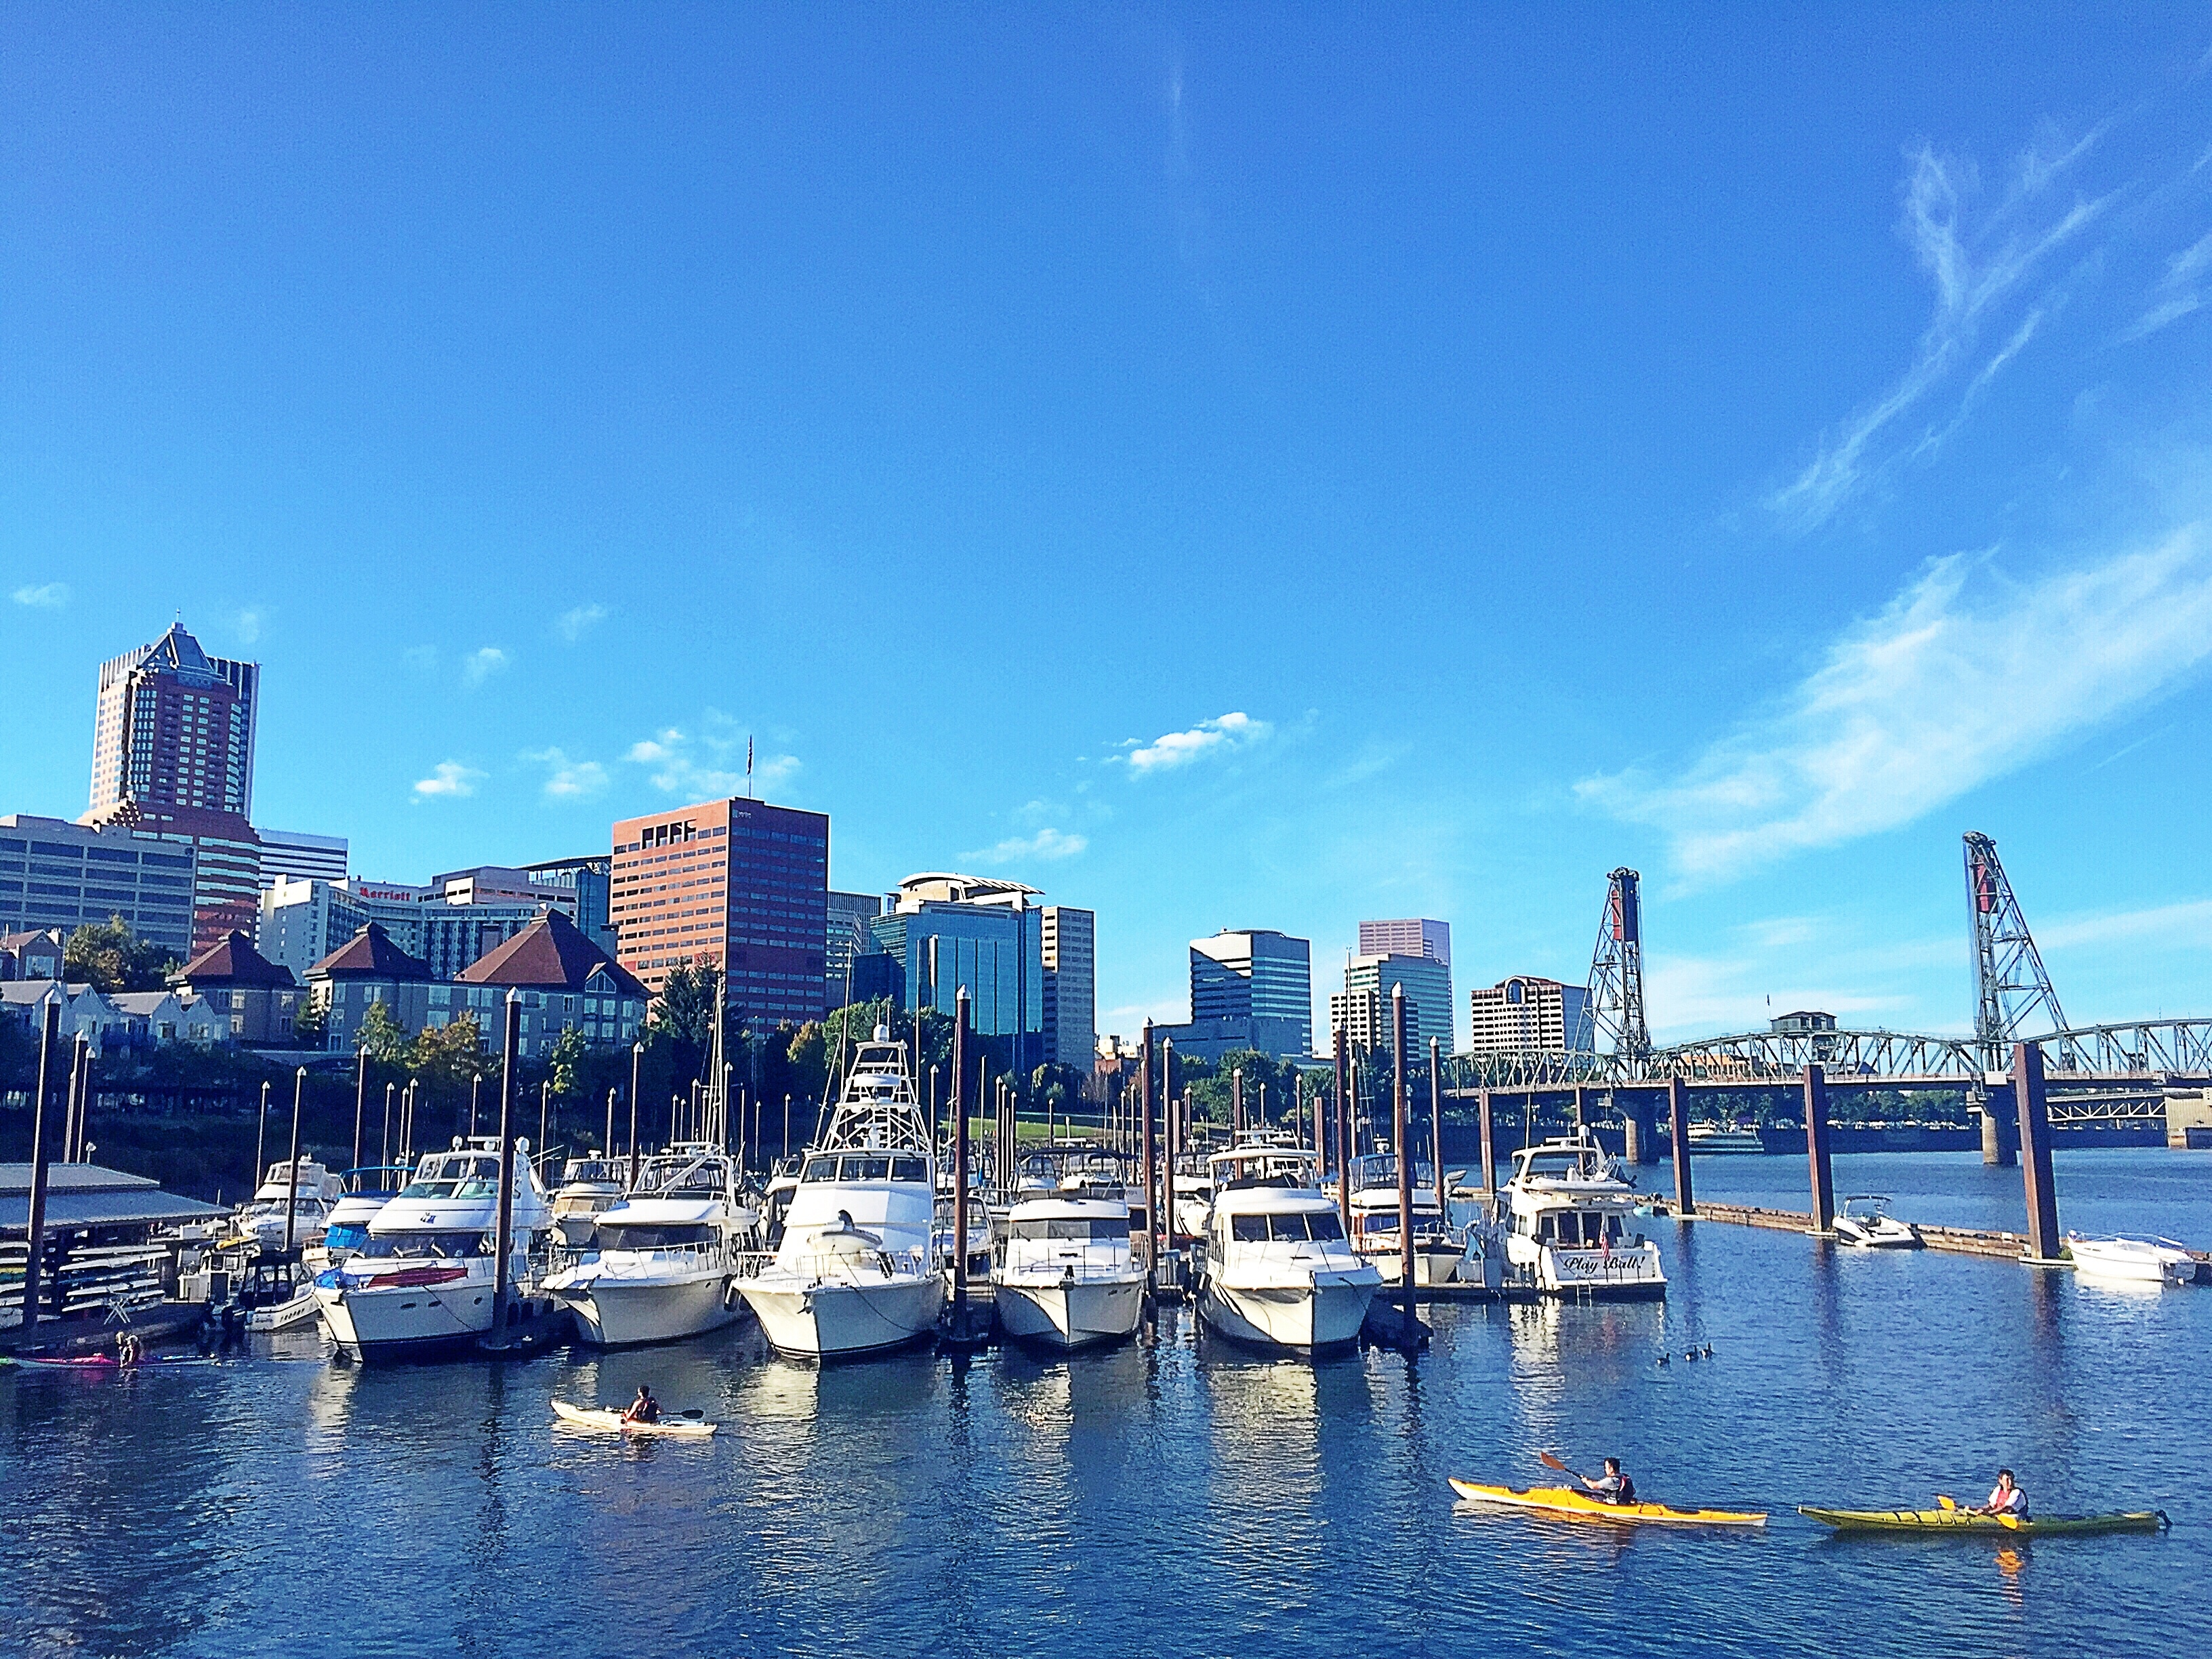 7 things to consider before moving to Portland, Oregon